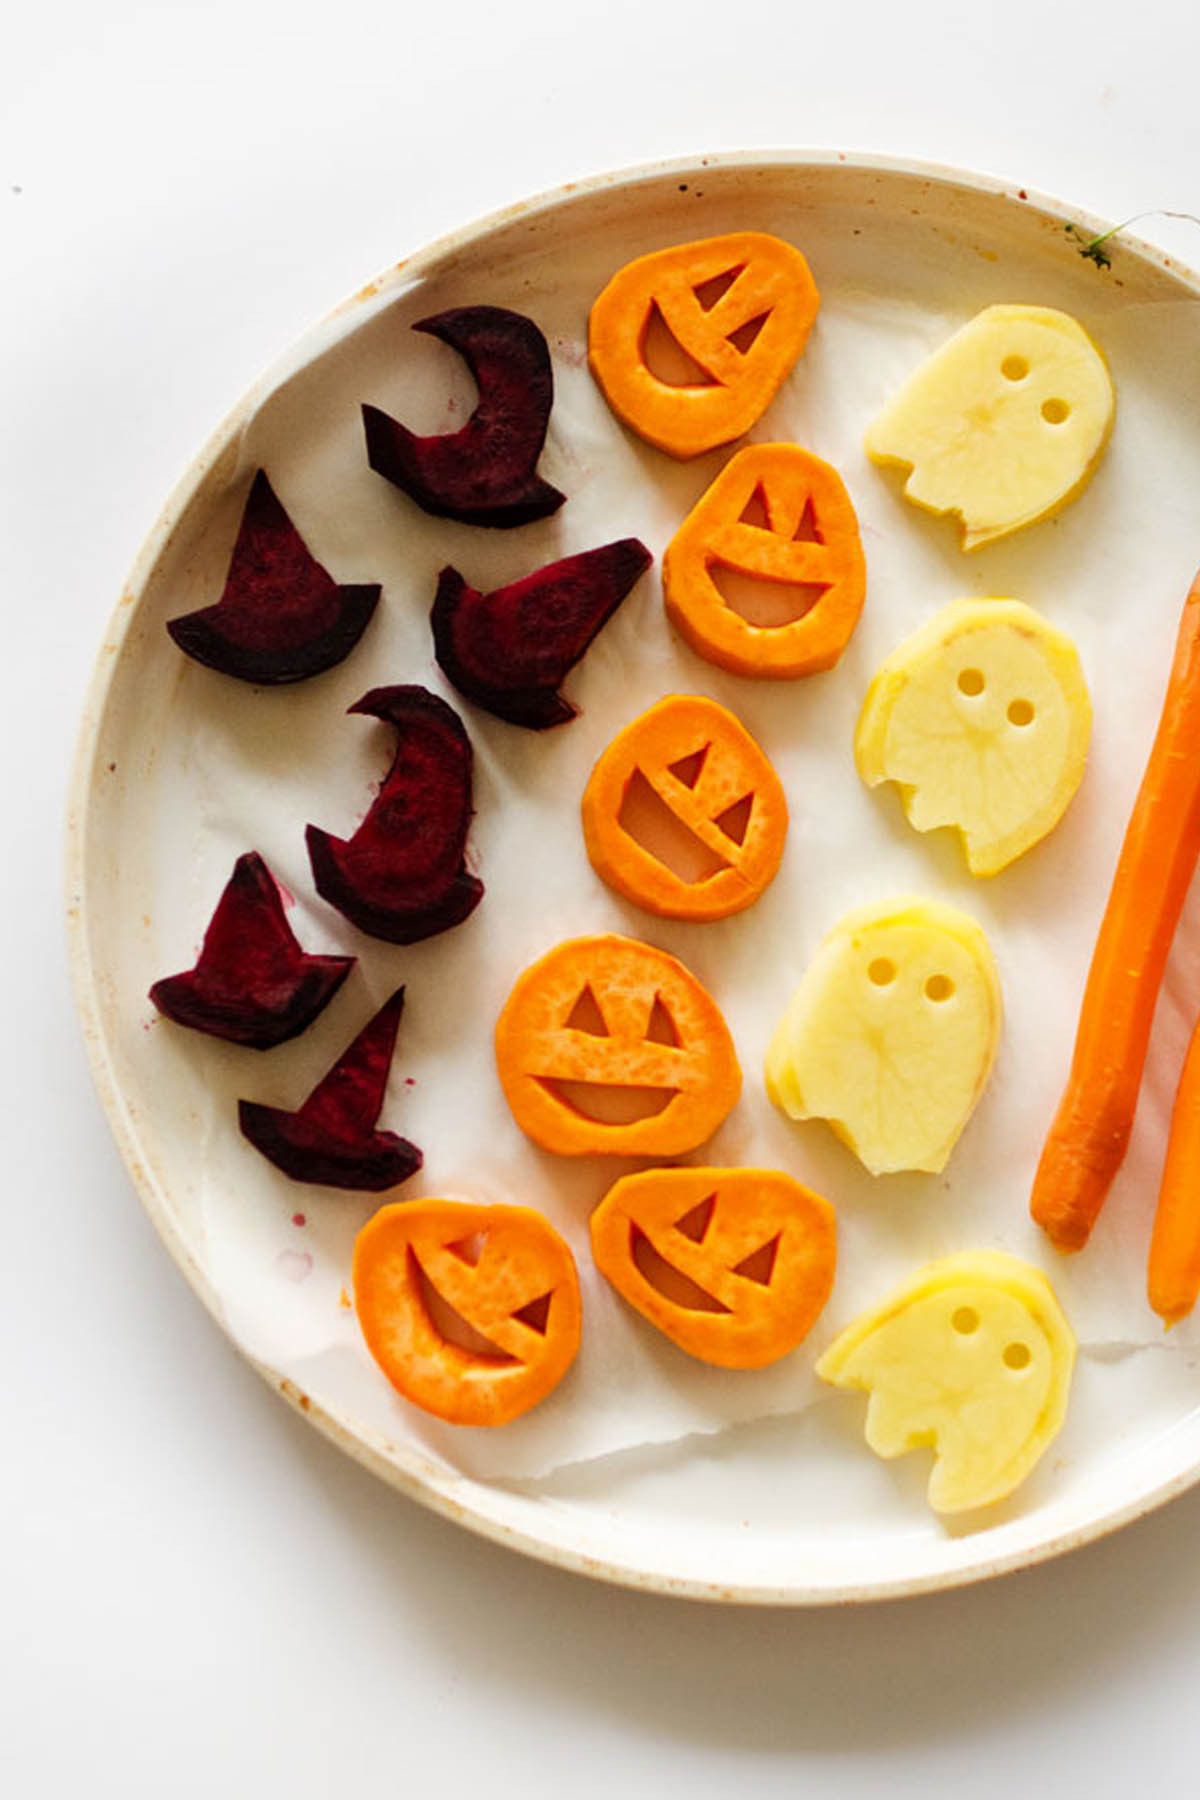 Halloween Dinner Recipes  25 Spooky Halloween Dinner Ideas Best Recipes for